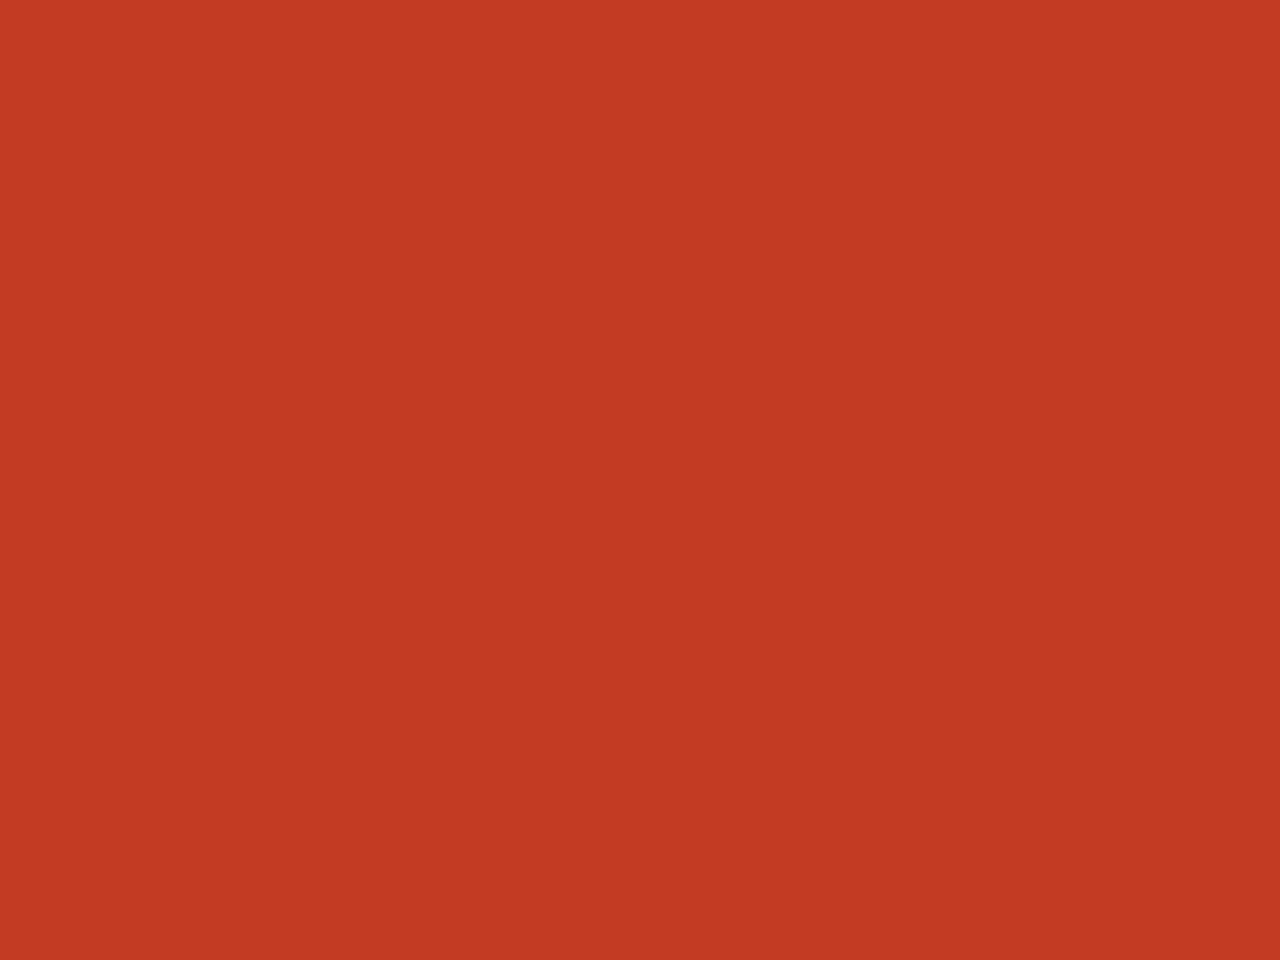 1280x960 Dark Pastel Red Solid Color Background